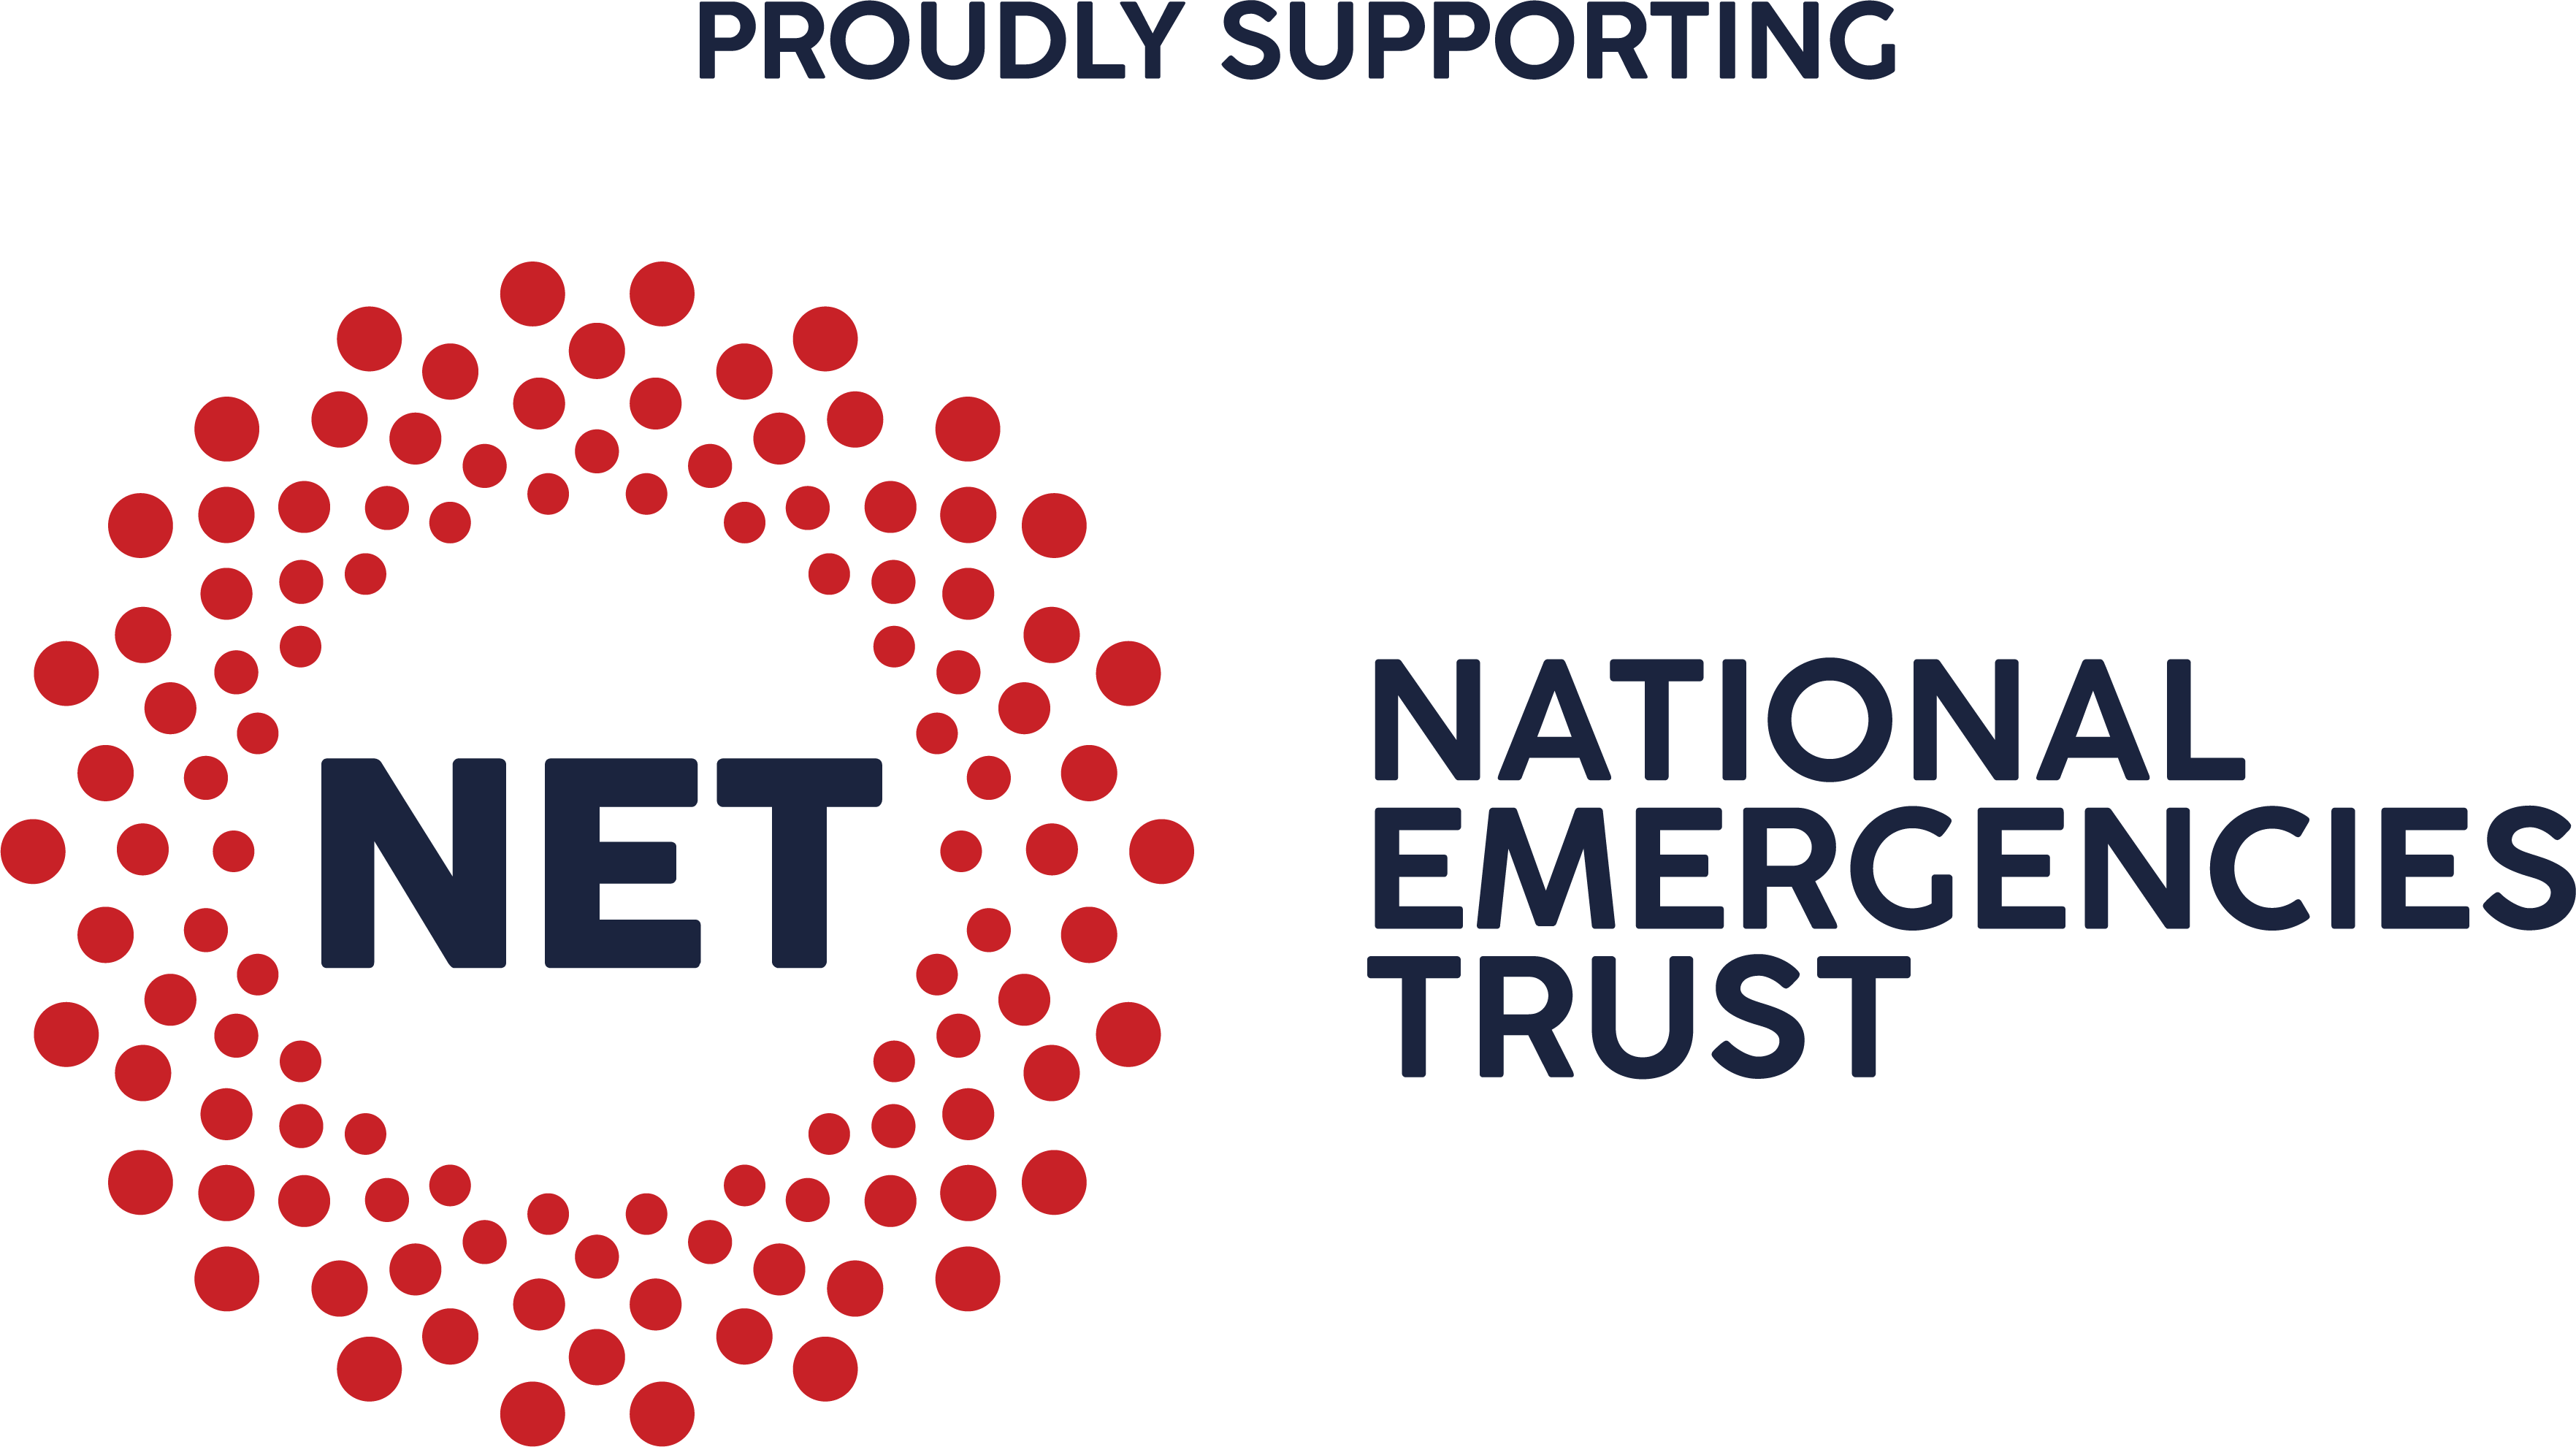 net-national-emergencies-trust